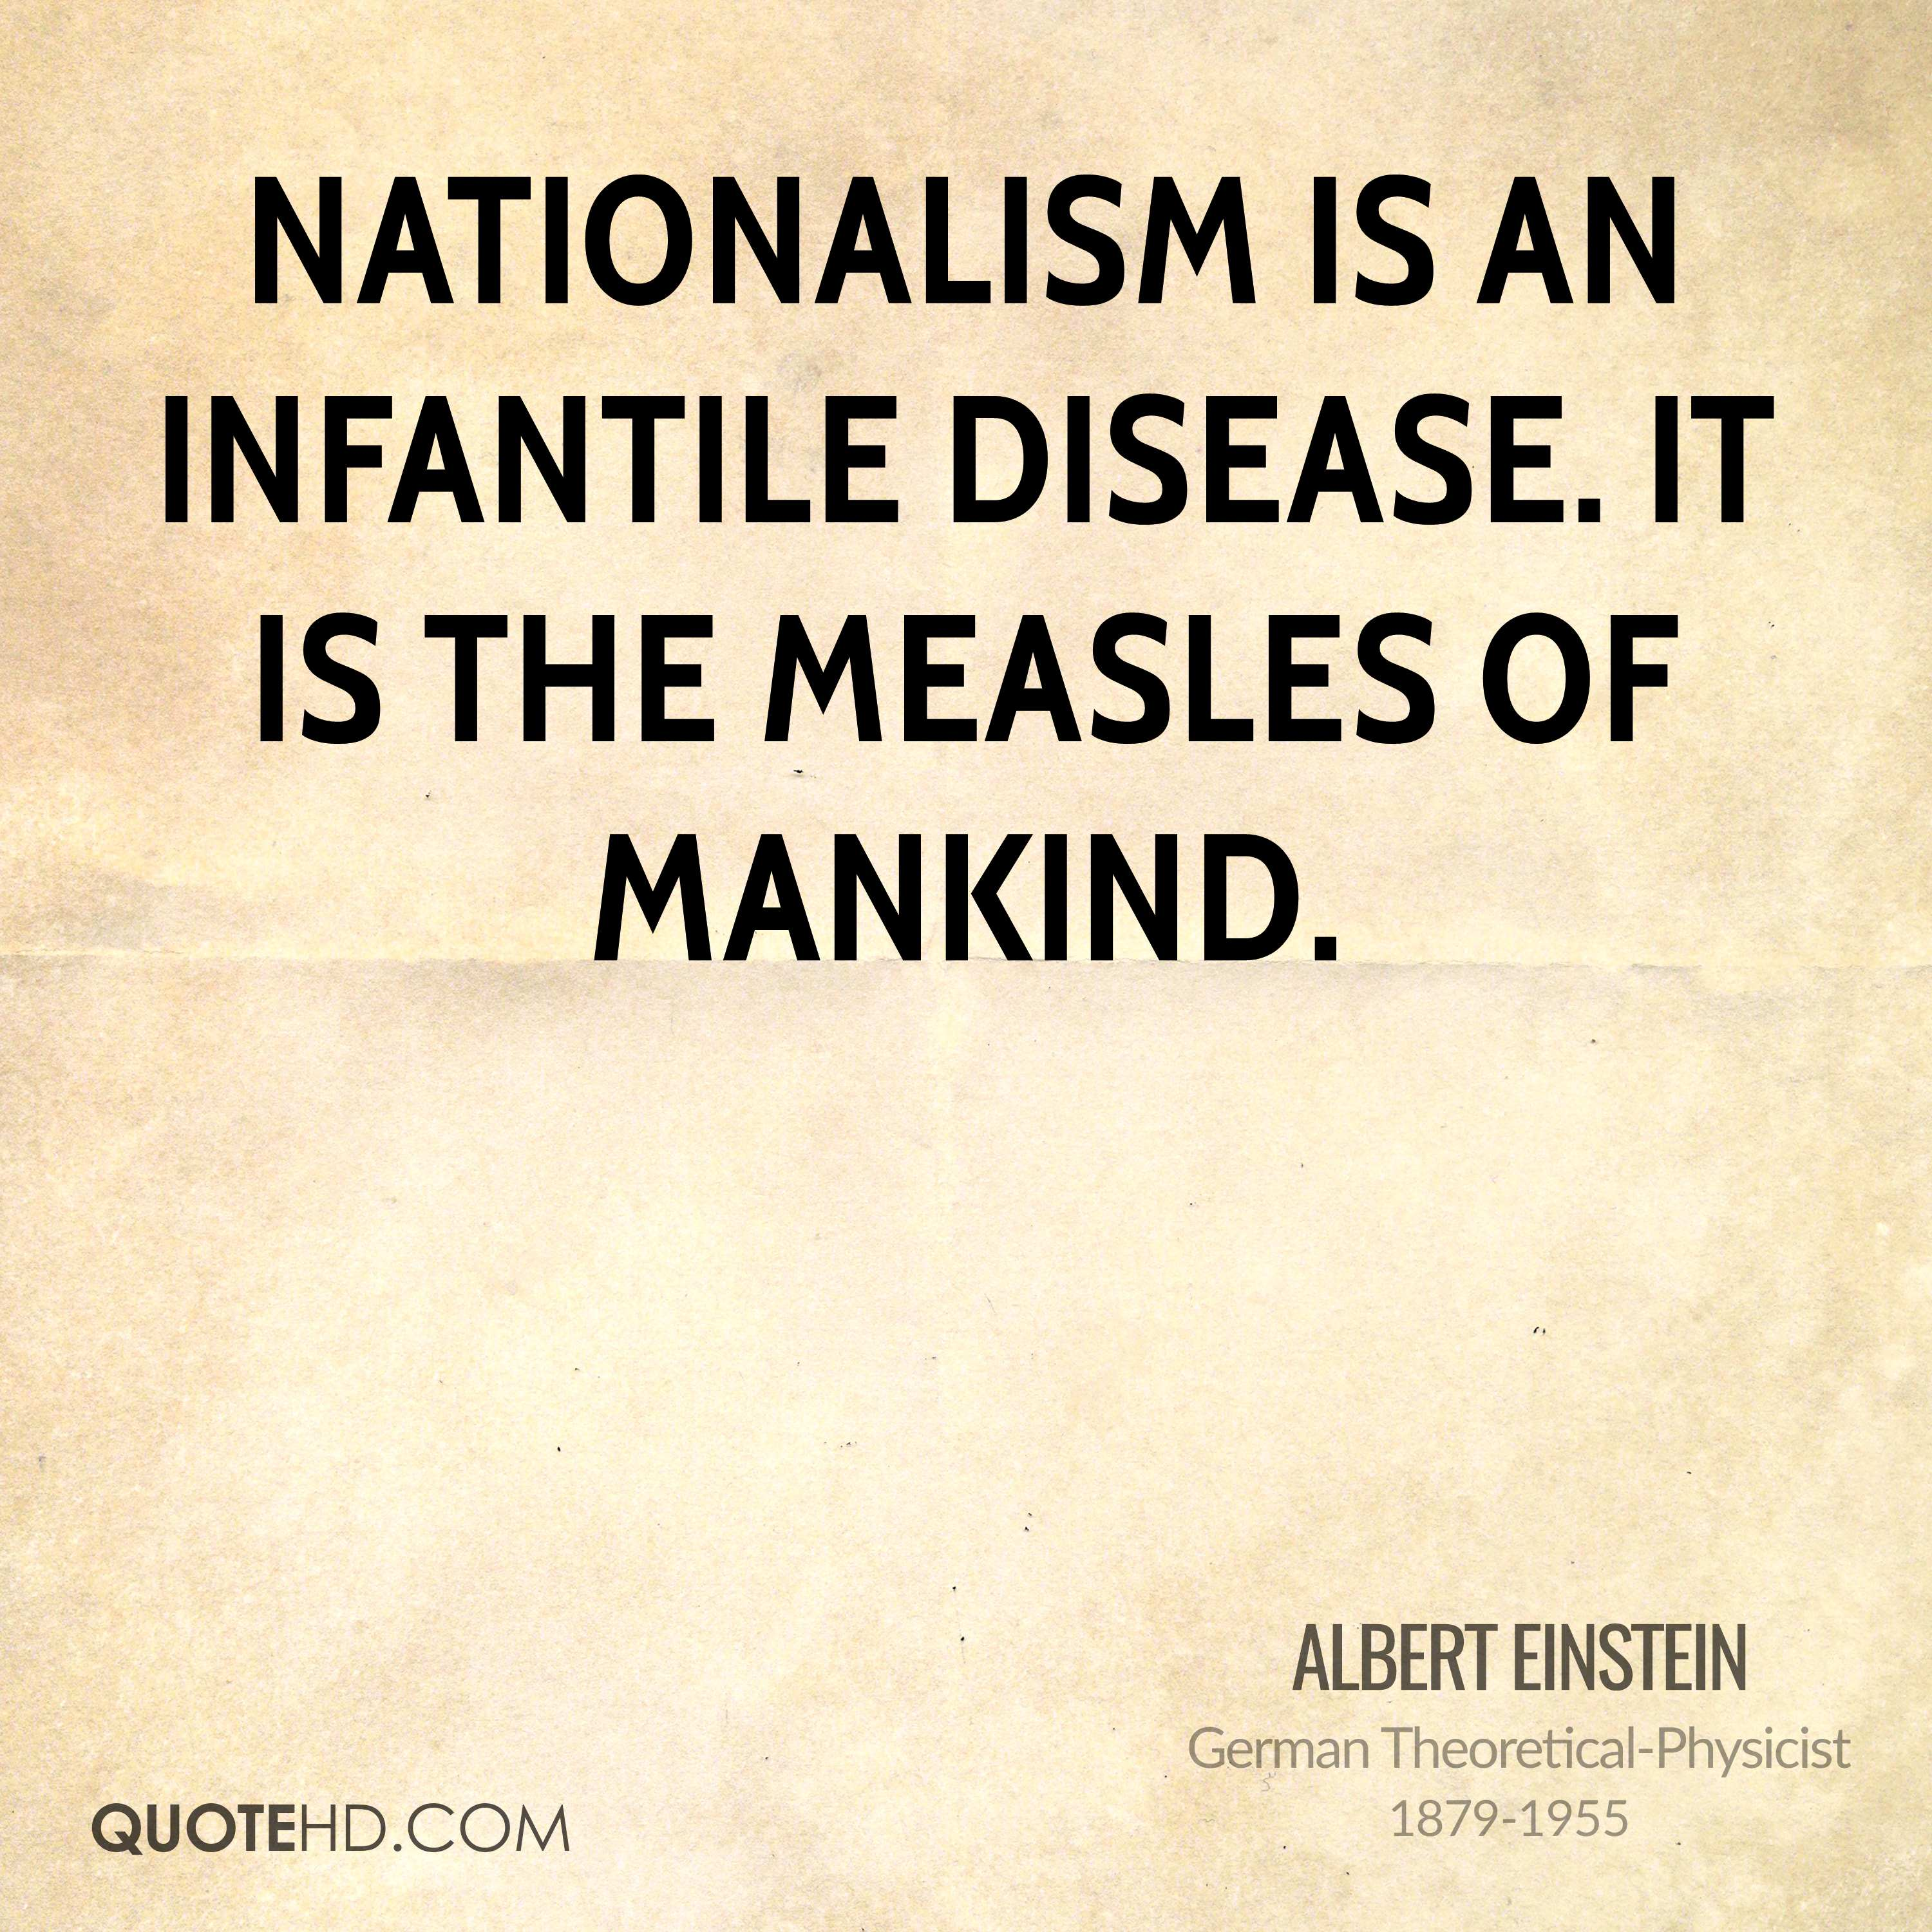 Nationalism is an infantile disease. It is the measles of mankind.